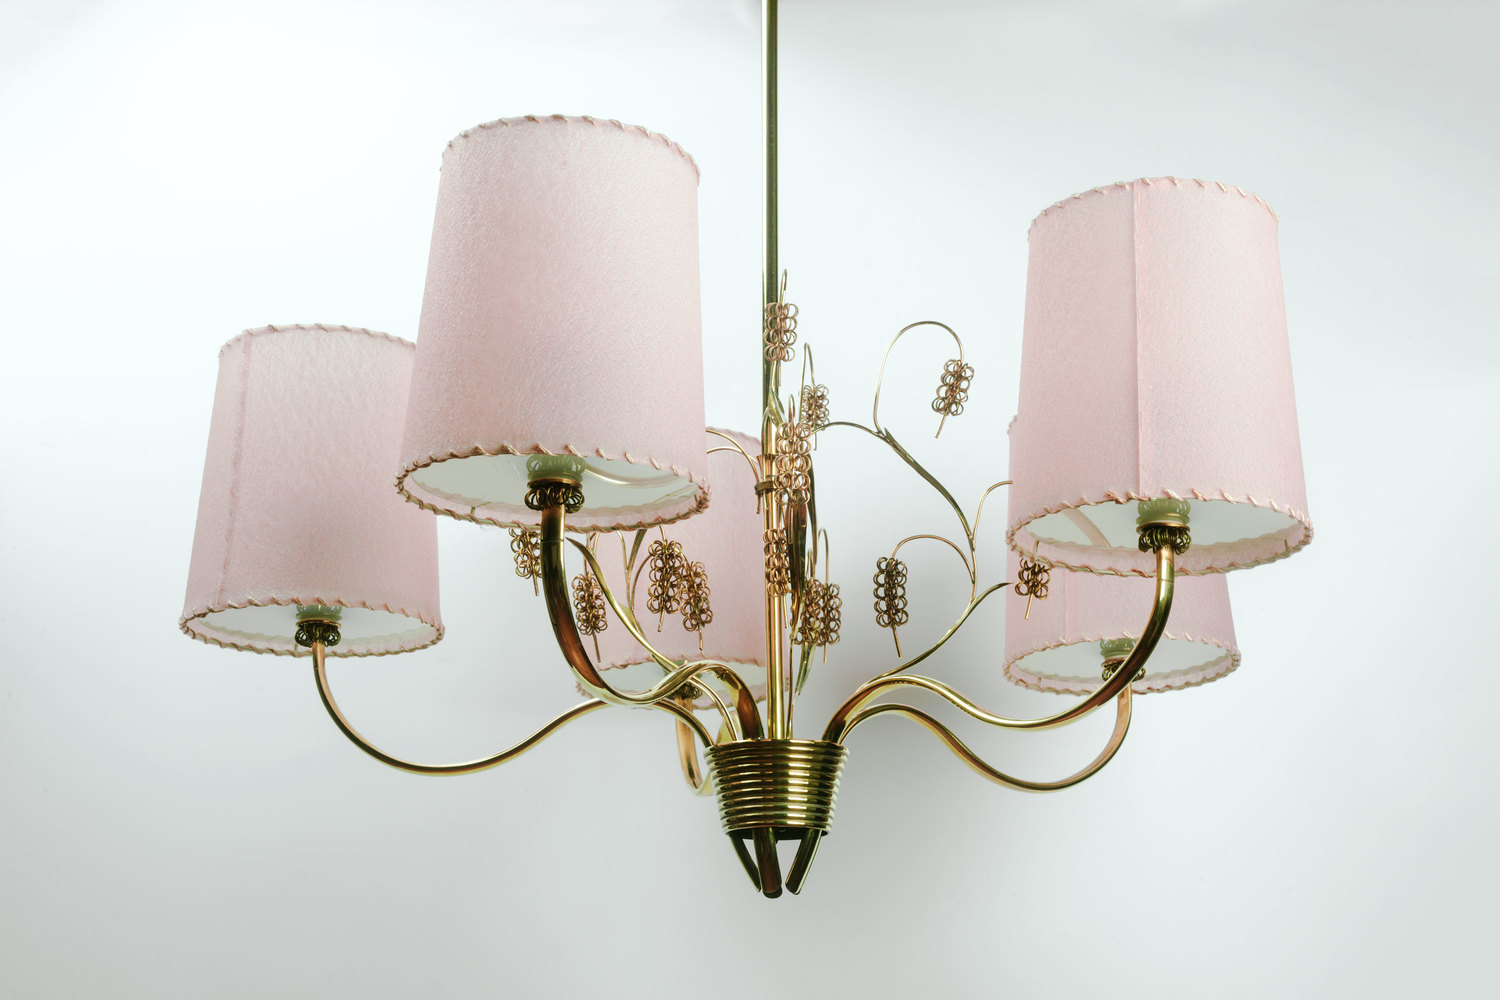 Finnish Chandelier 9015 By Paavo Tynell In Brass Glass And Parchment Shades Finland 1940s